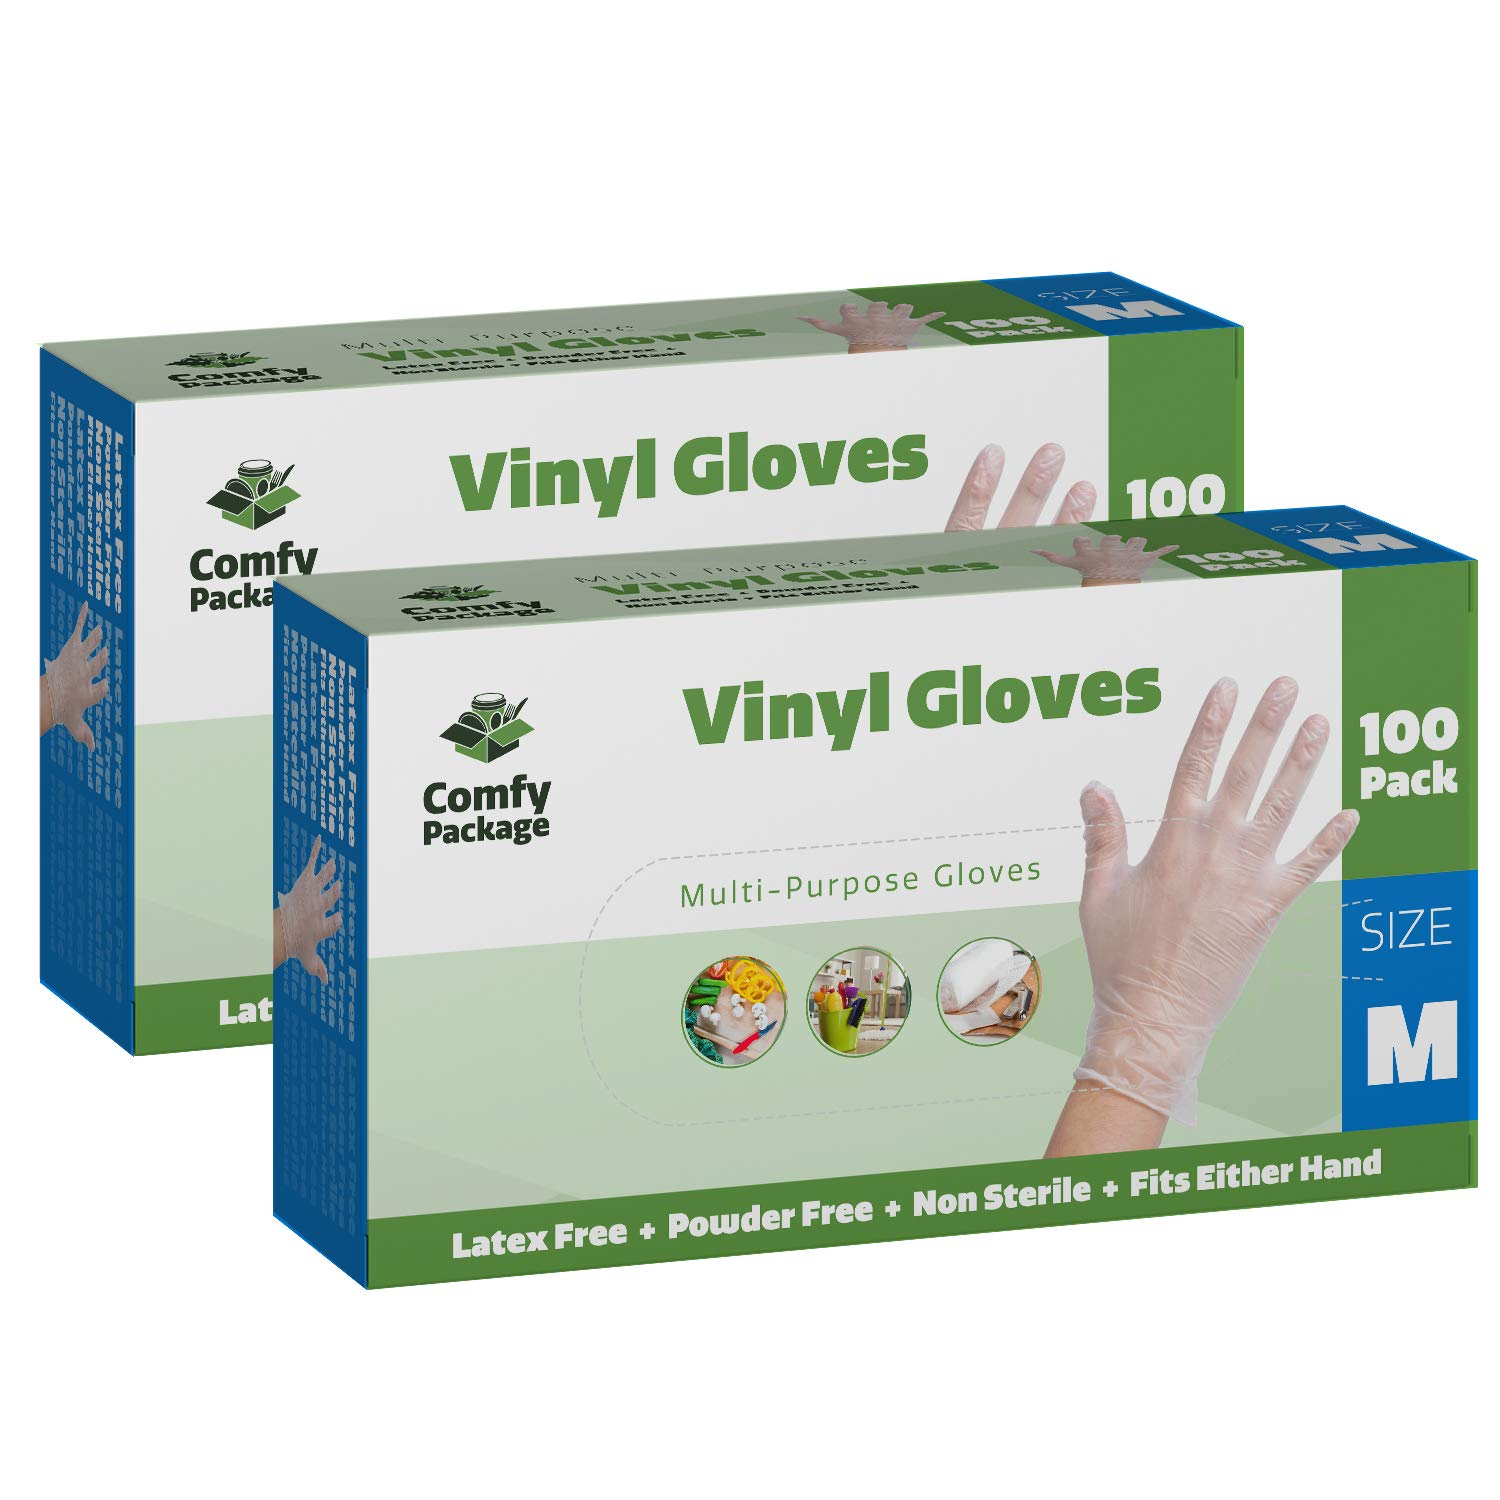 Clear Powder Free Vinyl Disposable Plastic Gloves [200 Pack] - Medium by Comfy Package